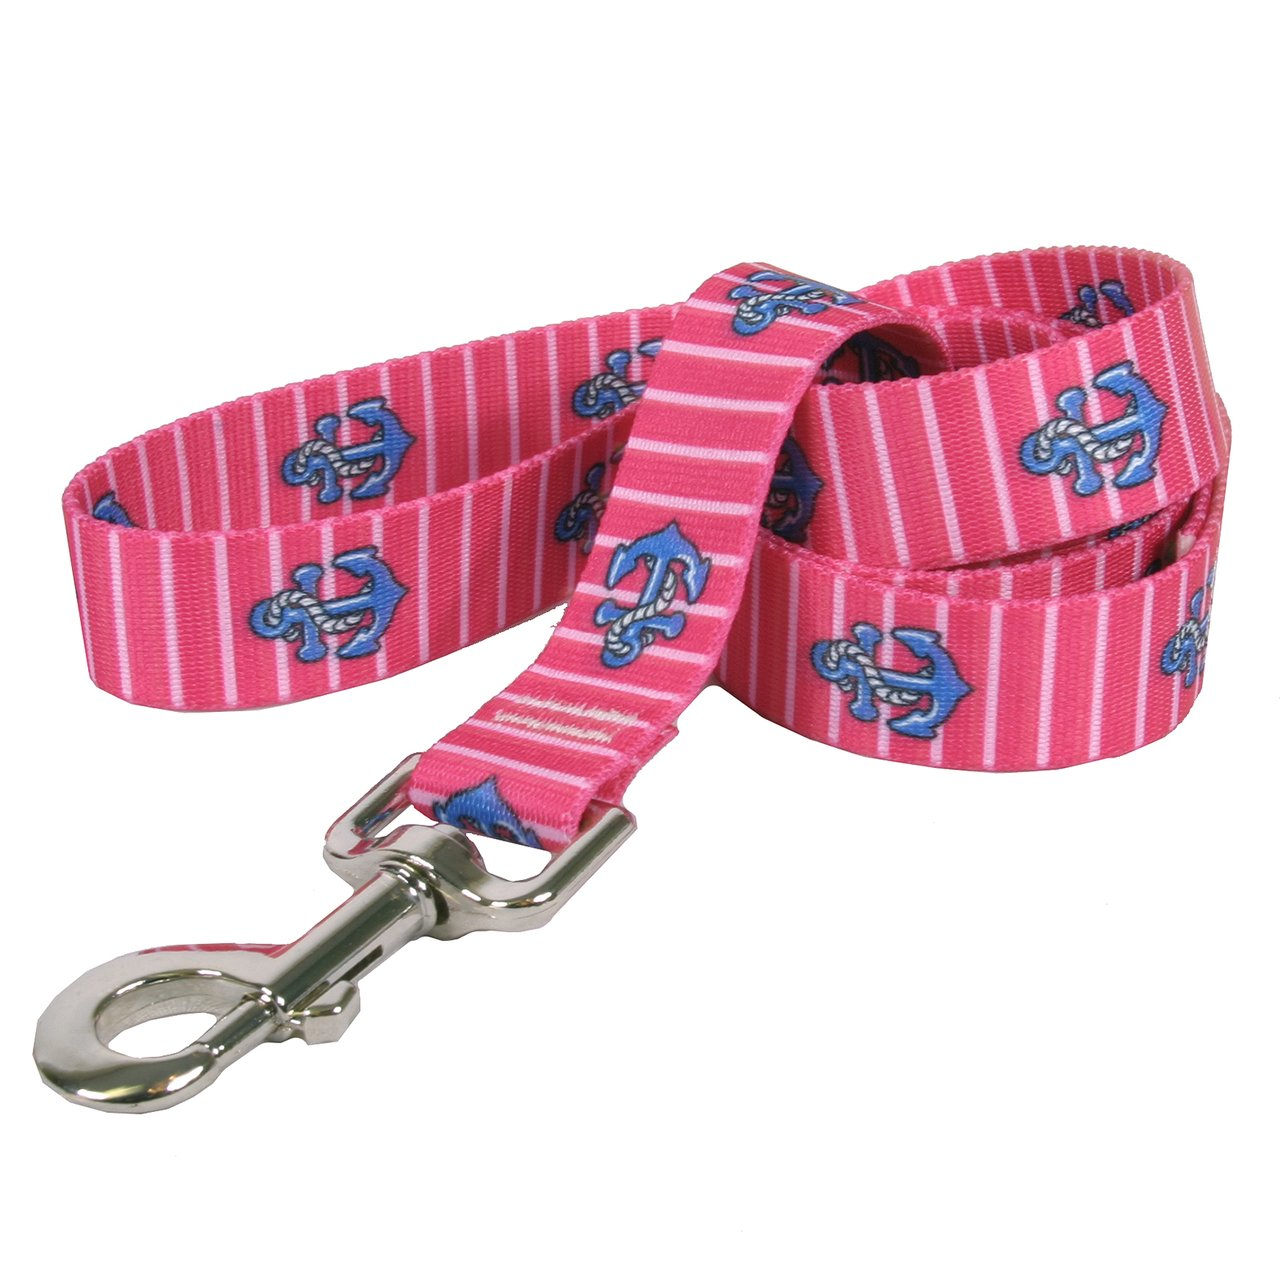 Yellow Dog Design Anchors On Pink Stripes Dog Leash 1'' Wide And 5' (60'') Long, Large